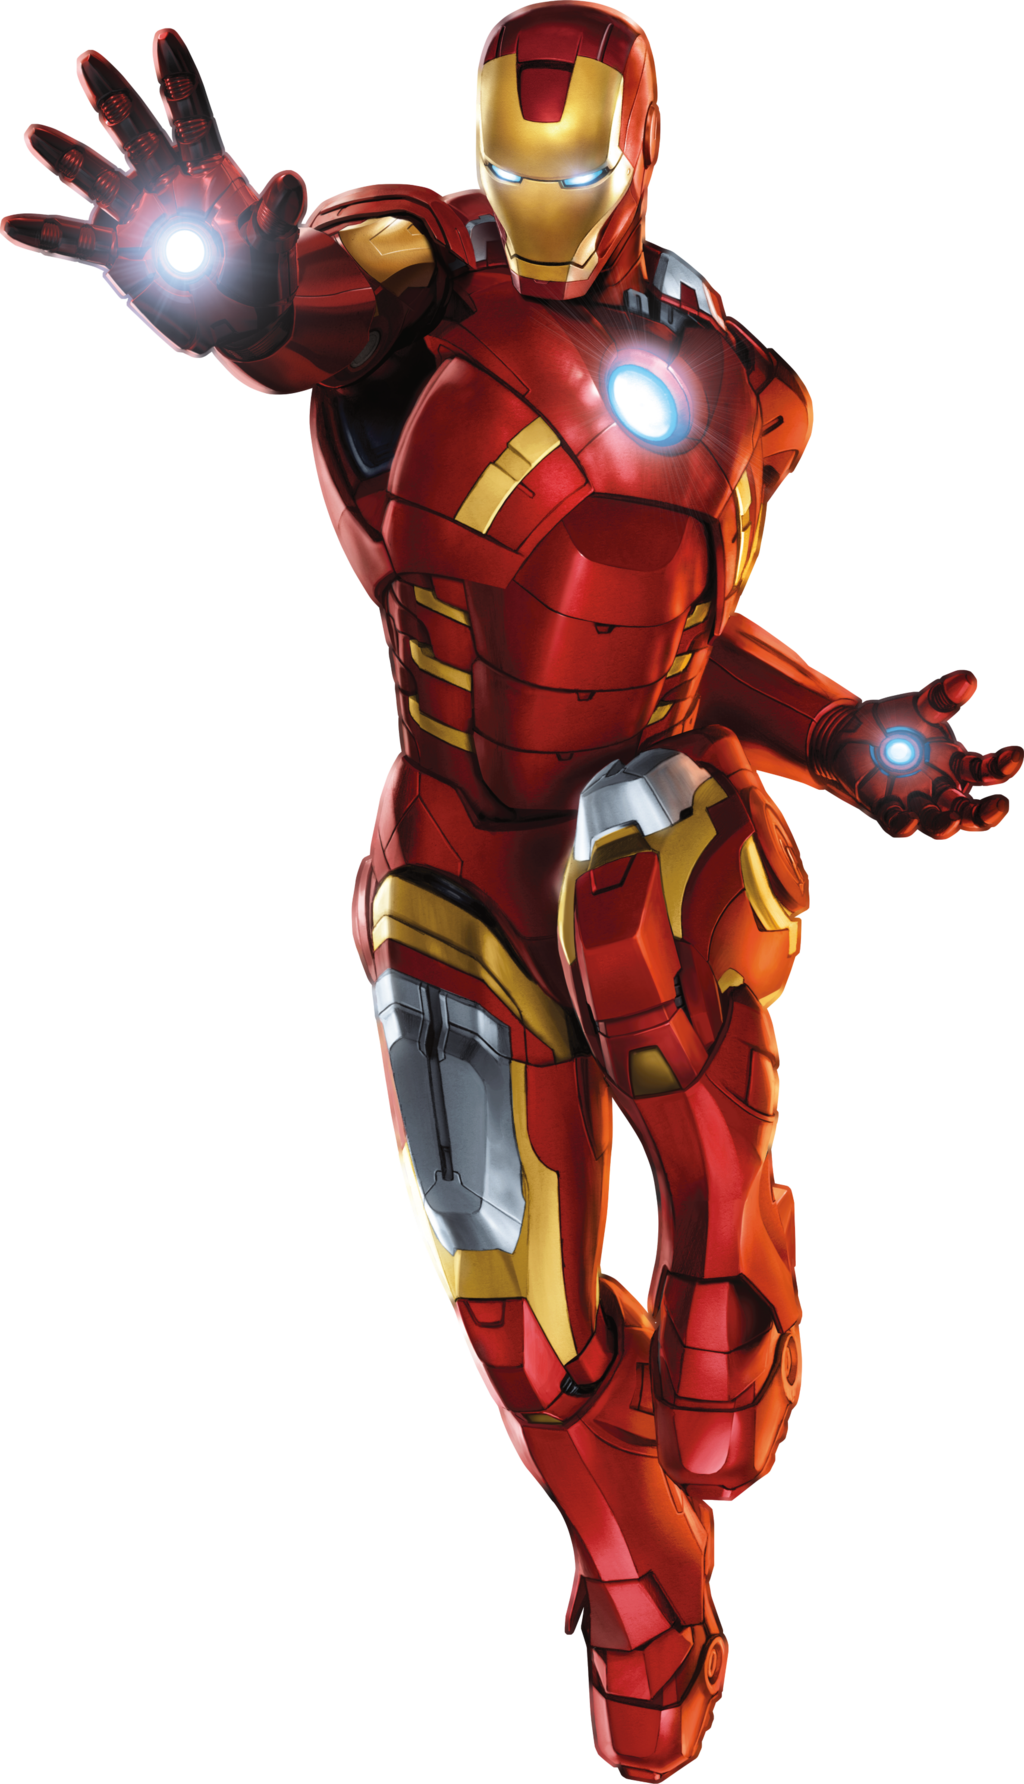 Ironman clipart vector royalty free library Free Iron Man Cliparts, Download Free Clip Art, Free Clip Art on ... vector royalty free library